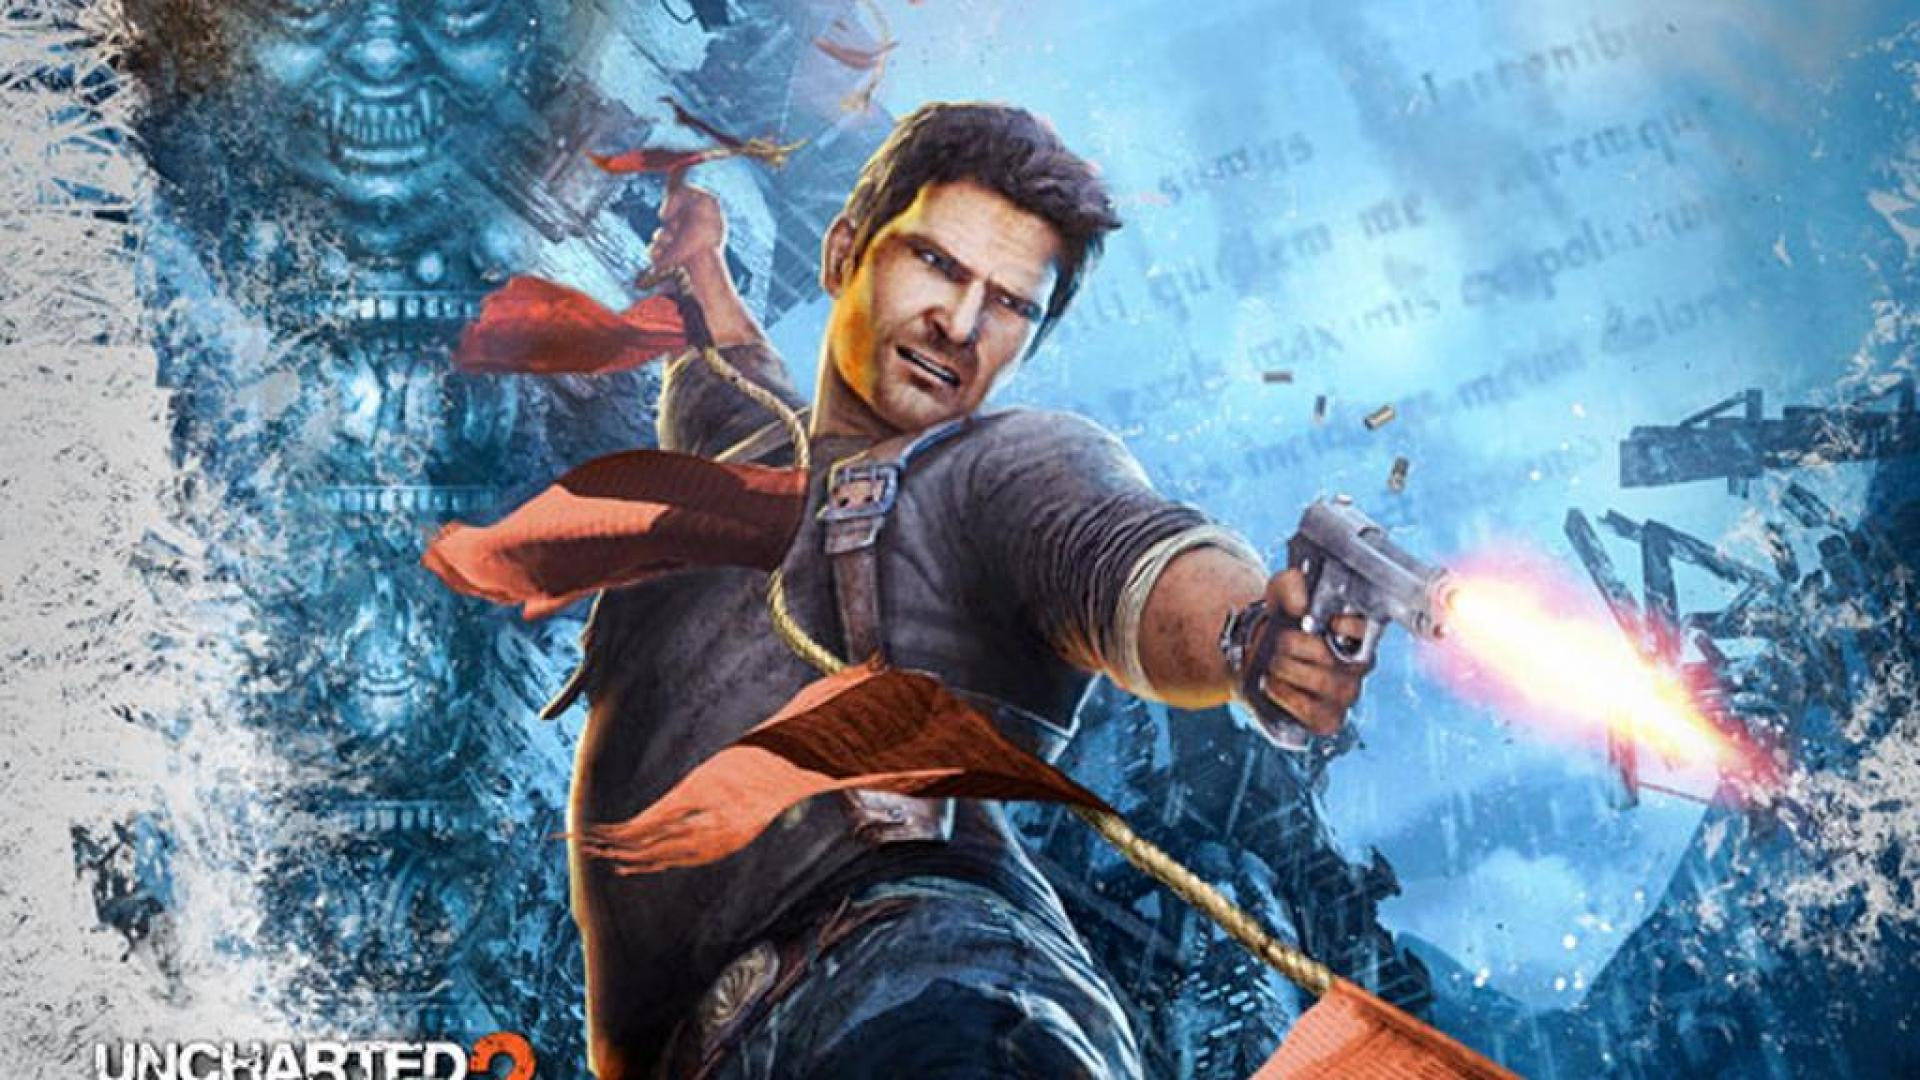 Uncharted 2 Cover Wallpaper-Uncharted 2 Cover Wallpaper-14